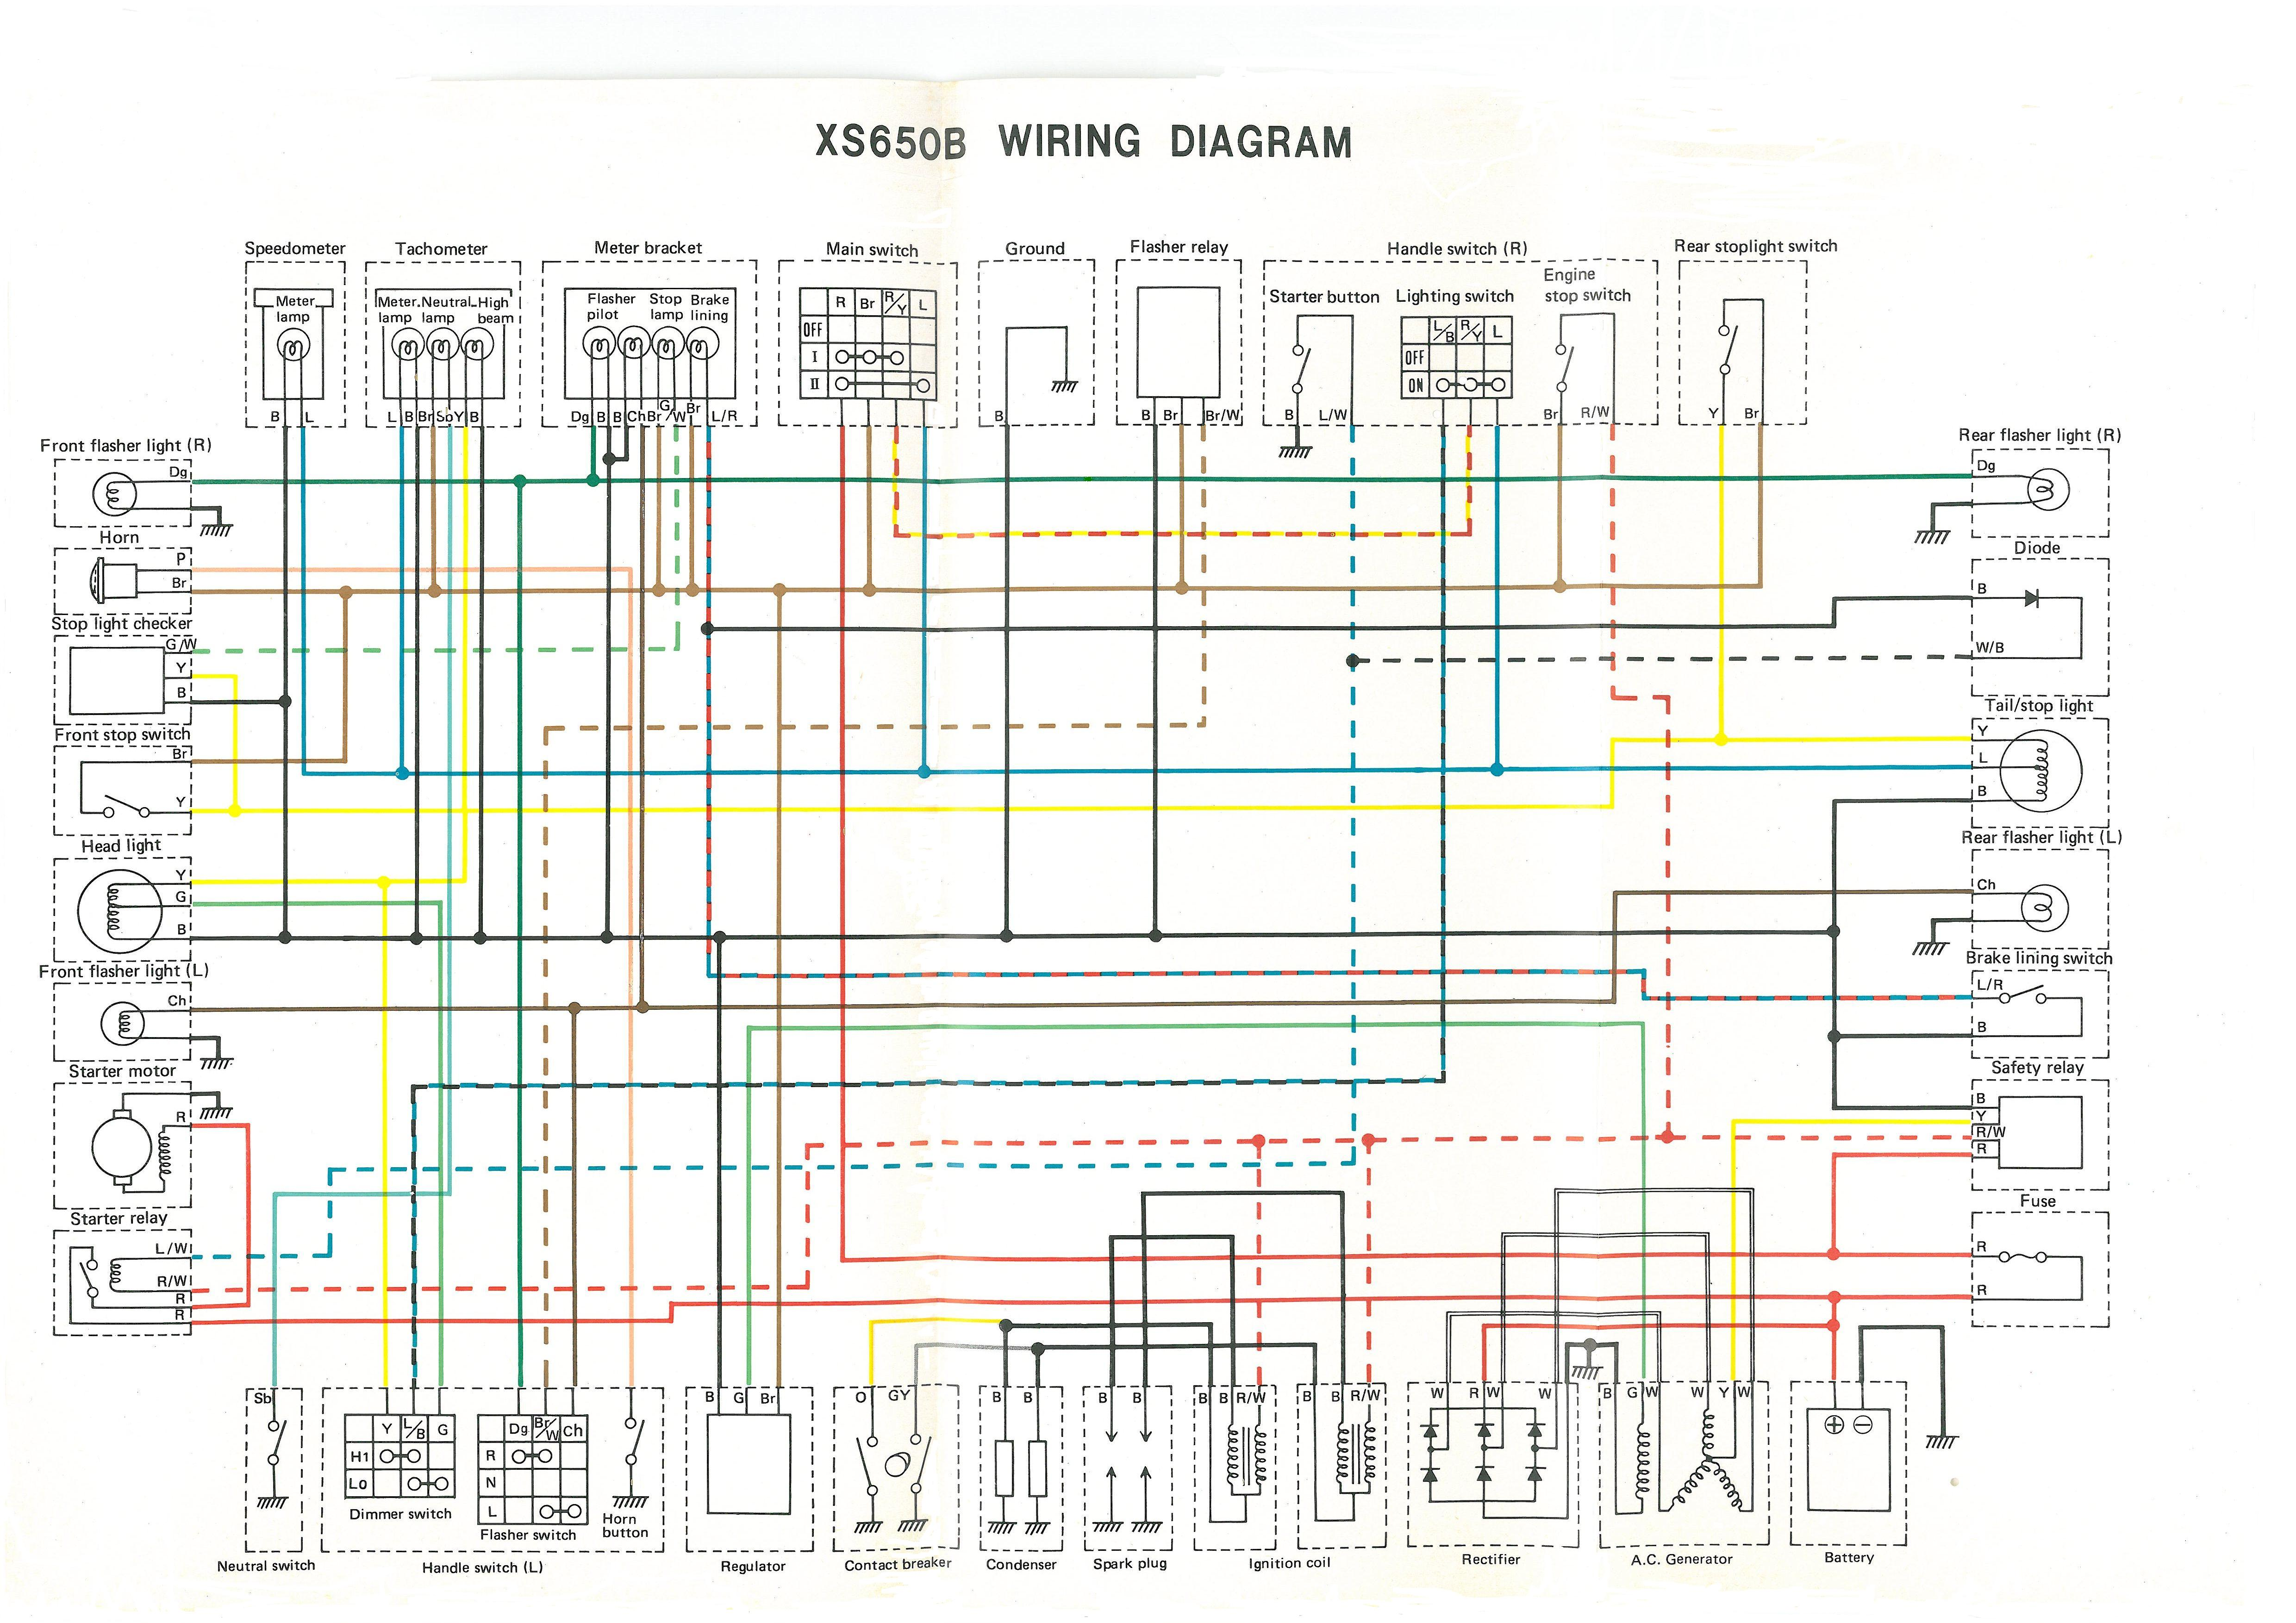 75 xs650b wiring circuit diagram 2?wd10006hd707 1978 yamaha xs650 wiring diagram 1978 wiring diagrams collection  at reclaimingppi.co